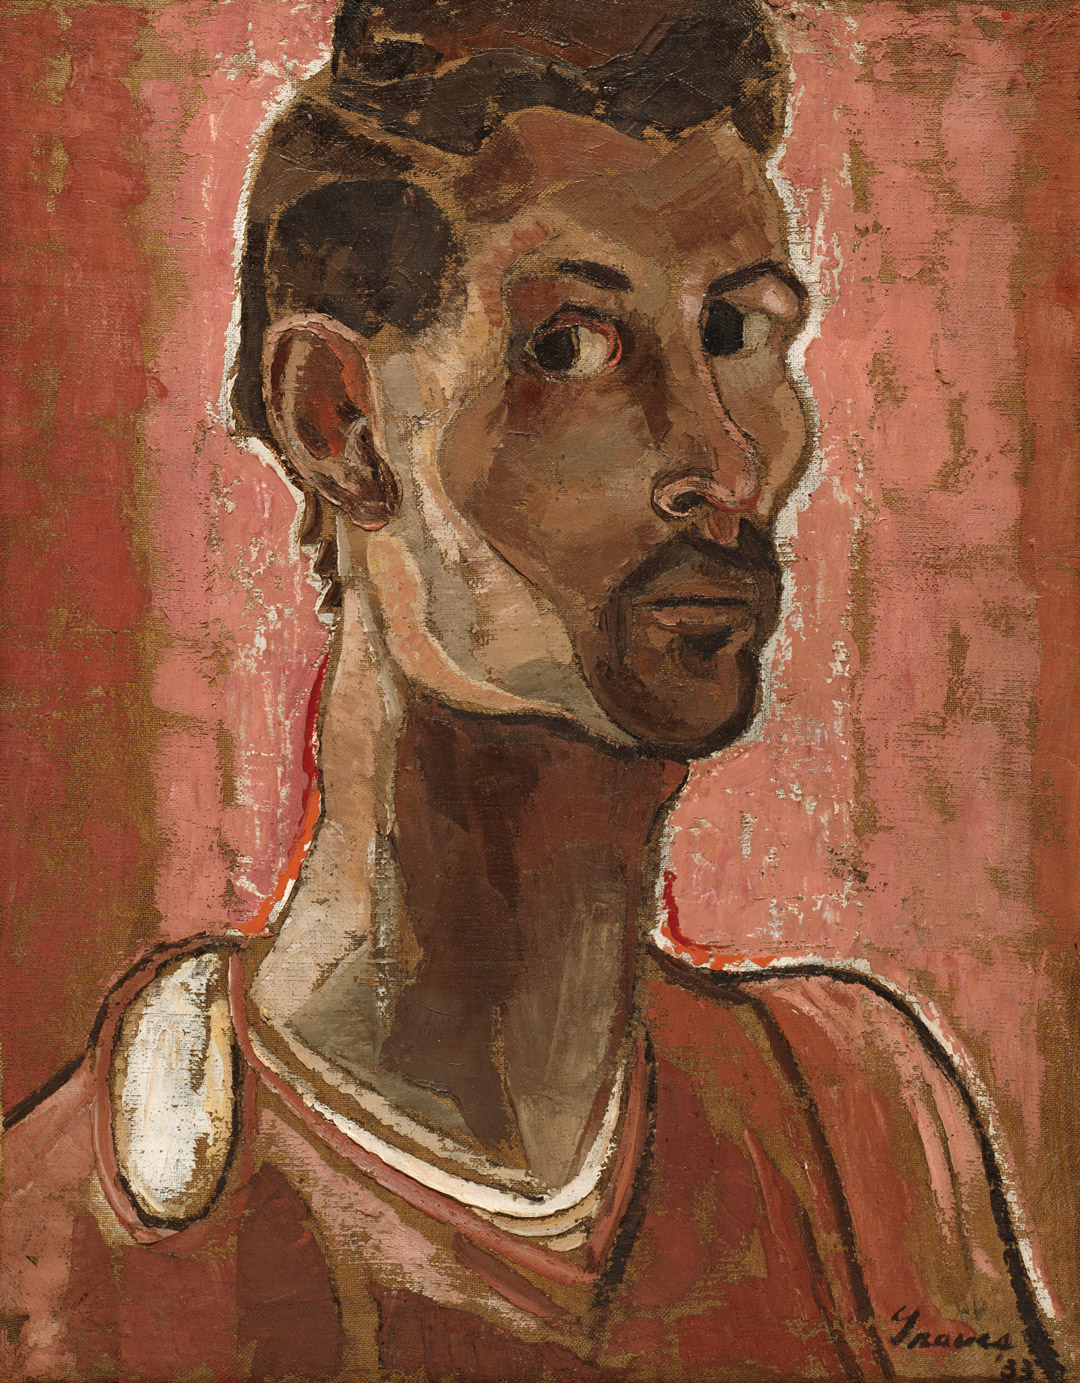 Self-portrait by Morris Graves